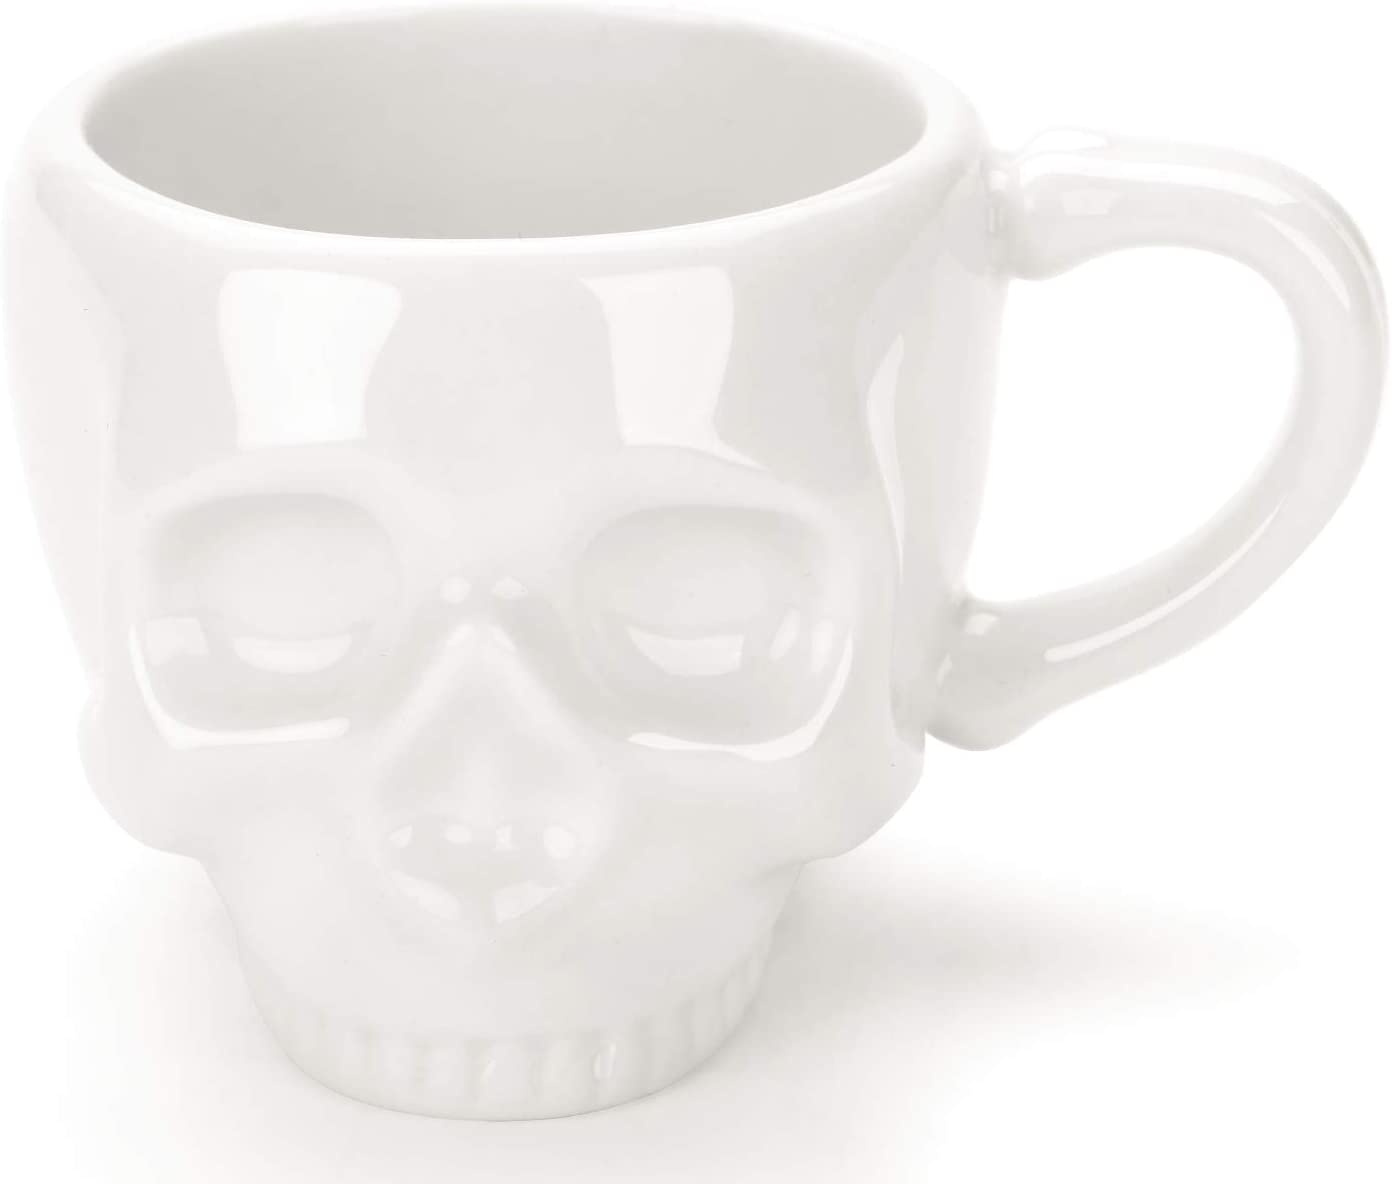 Skullis Porcelain Ceramic Skull Shaped Espresso Coffee Cup 2 OZ for Home and Office Party, Holiday and Birthday Present, Unique, Exclusive.